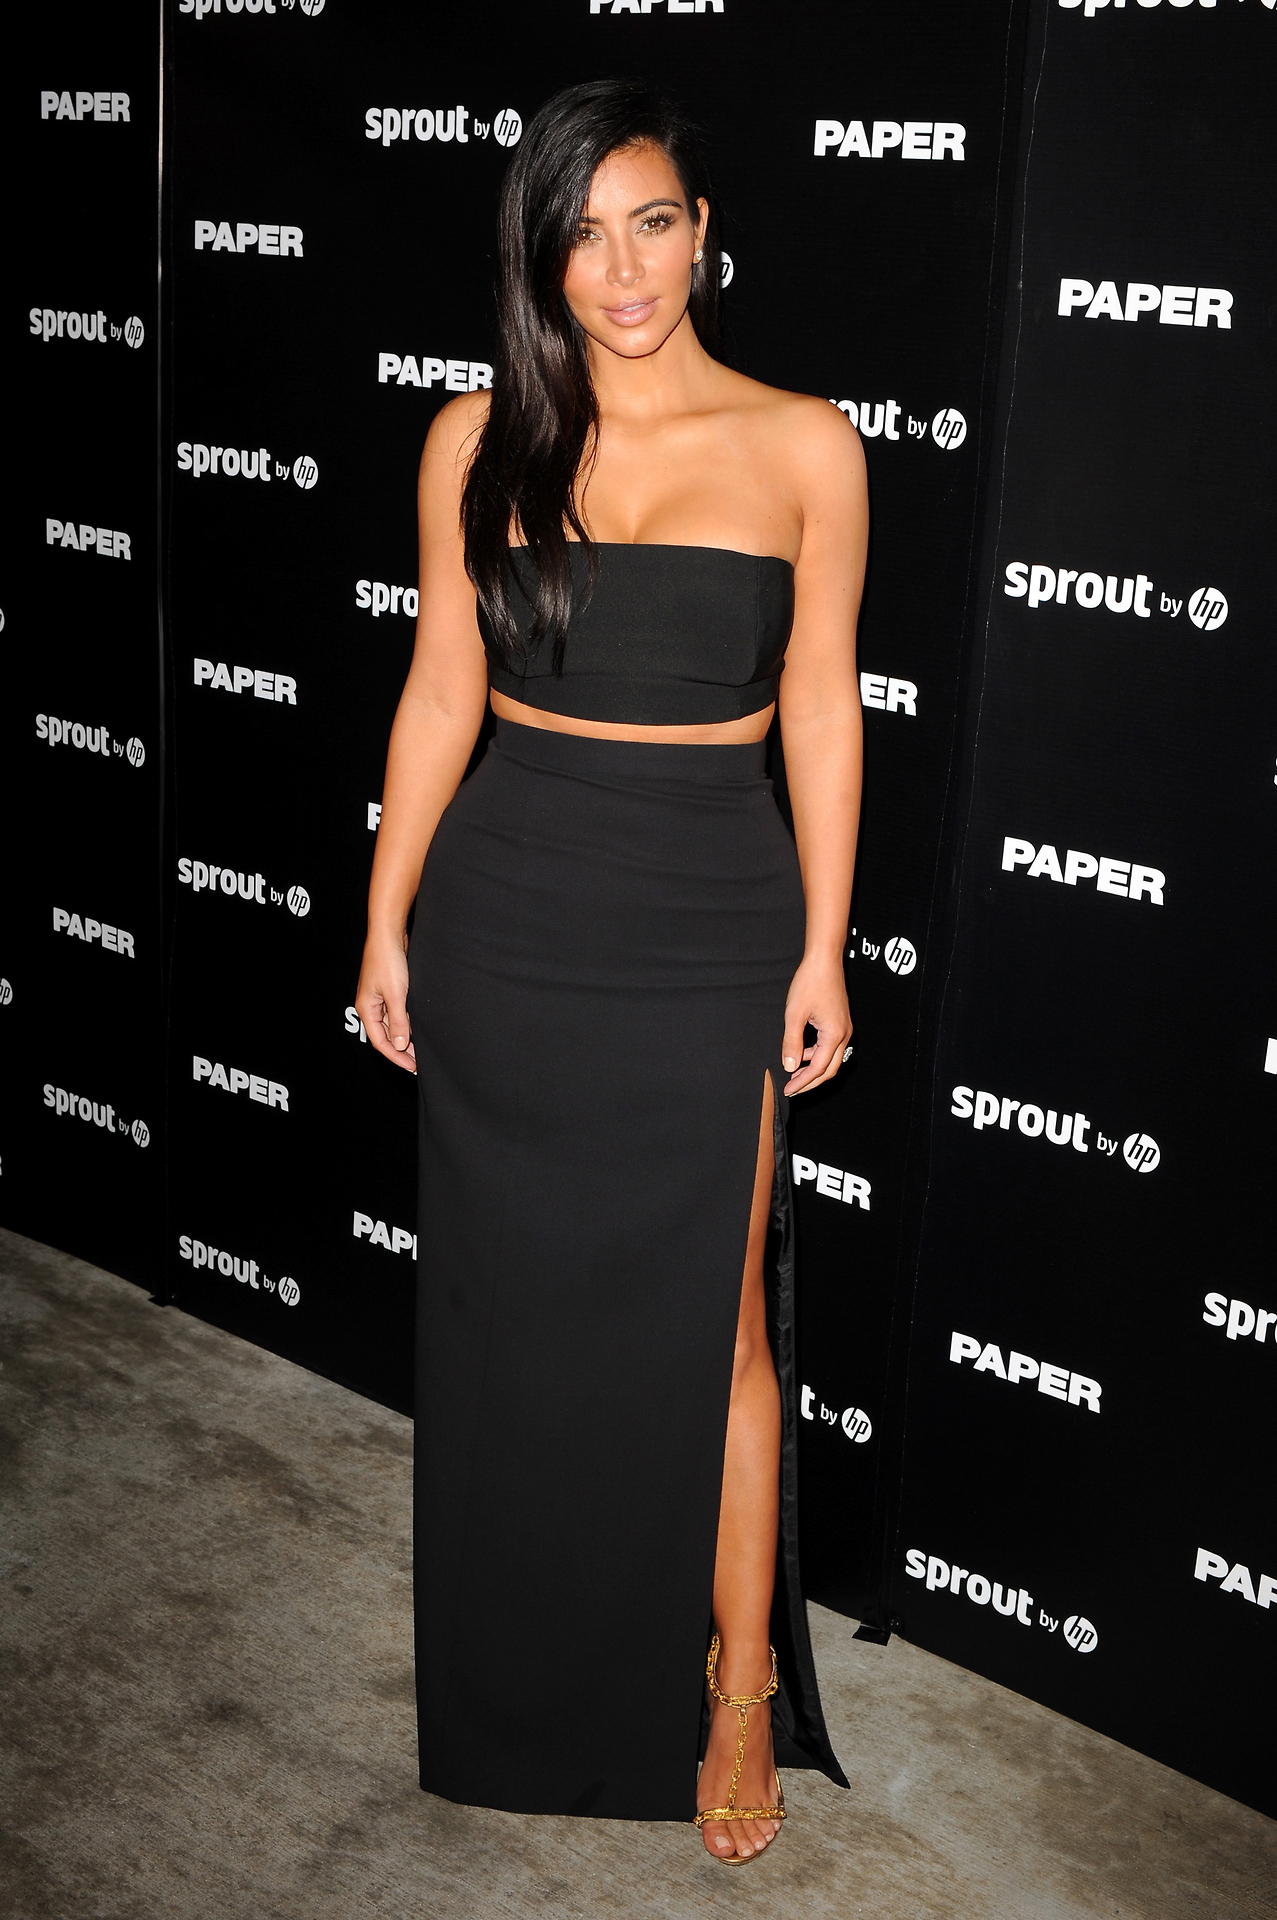 0 9 Kim Kardashian's Art Basel Miami Beach Paper Magazine Dinner Mugler Black Crop Tube Top, J Mendel High Slit Maxi Skirt, and Tom Ford Sandals